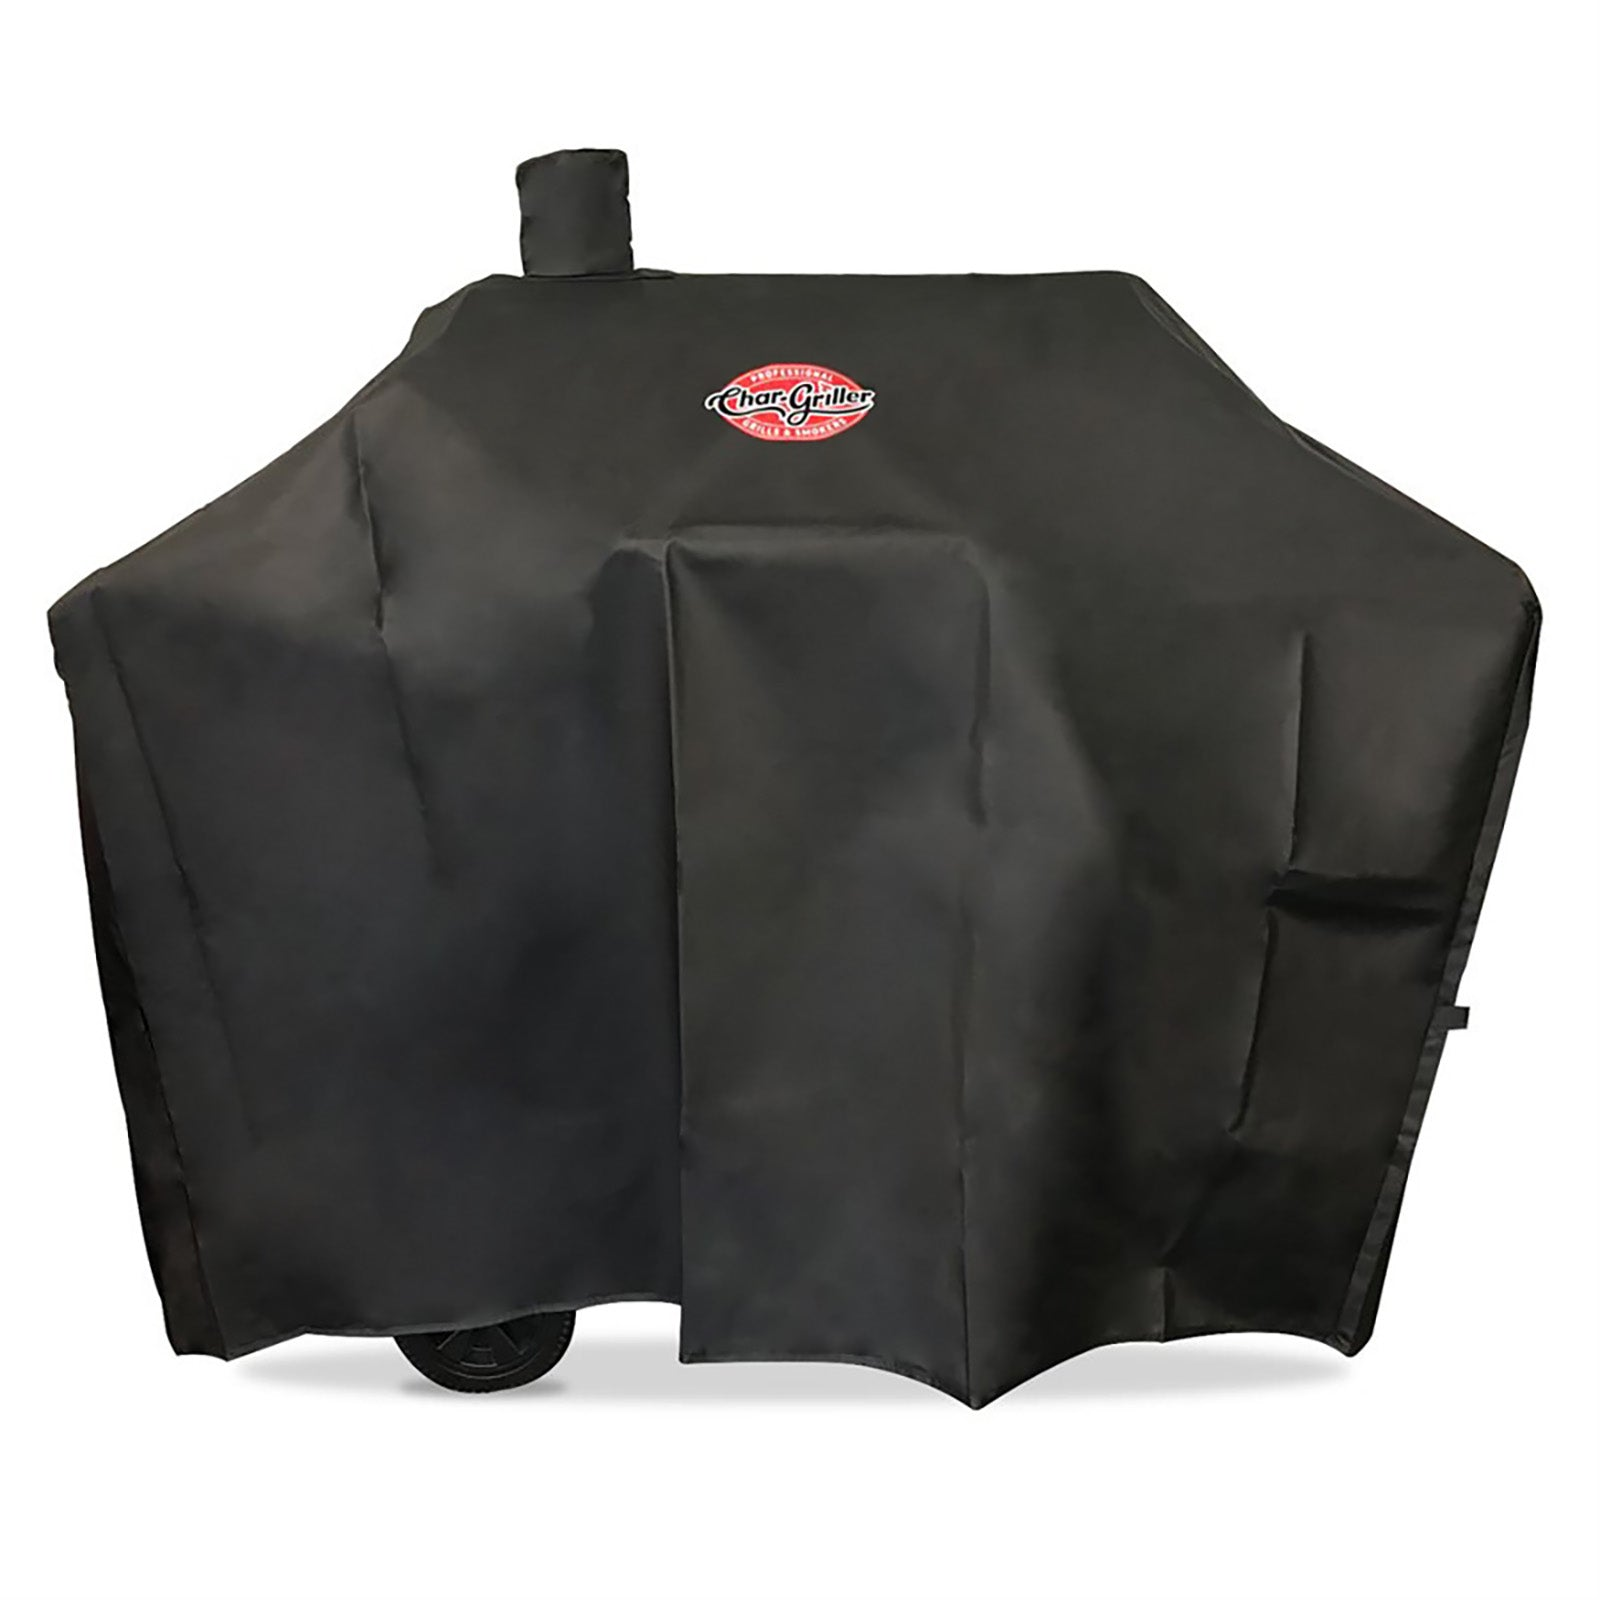 Legacy Charcoal Grill Cover